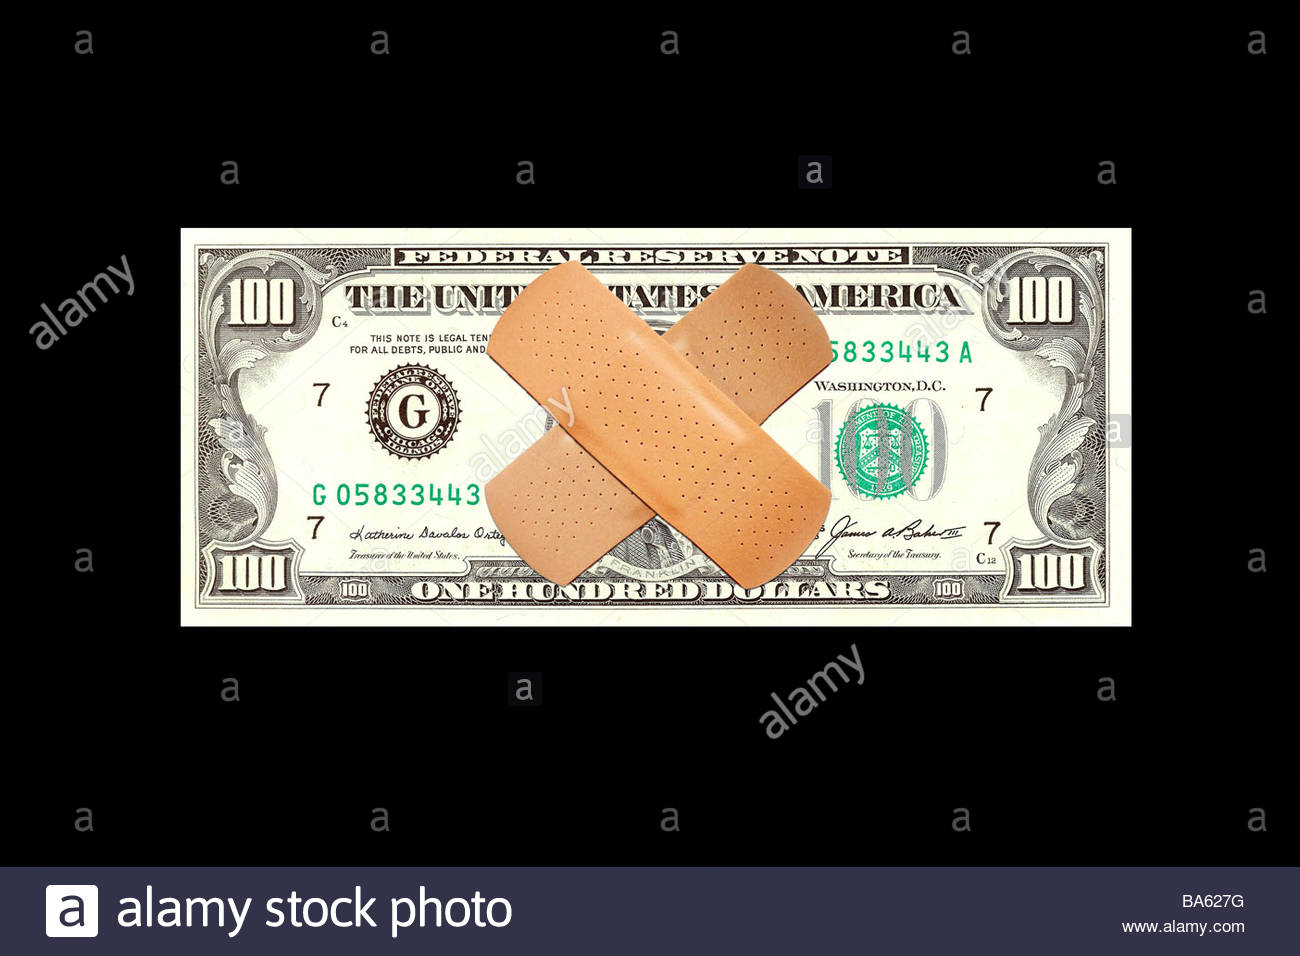 Bandages covering face of one hundred dollar bill - Stock Image